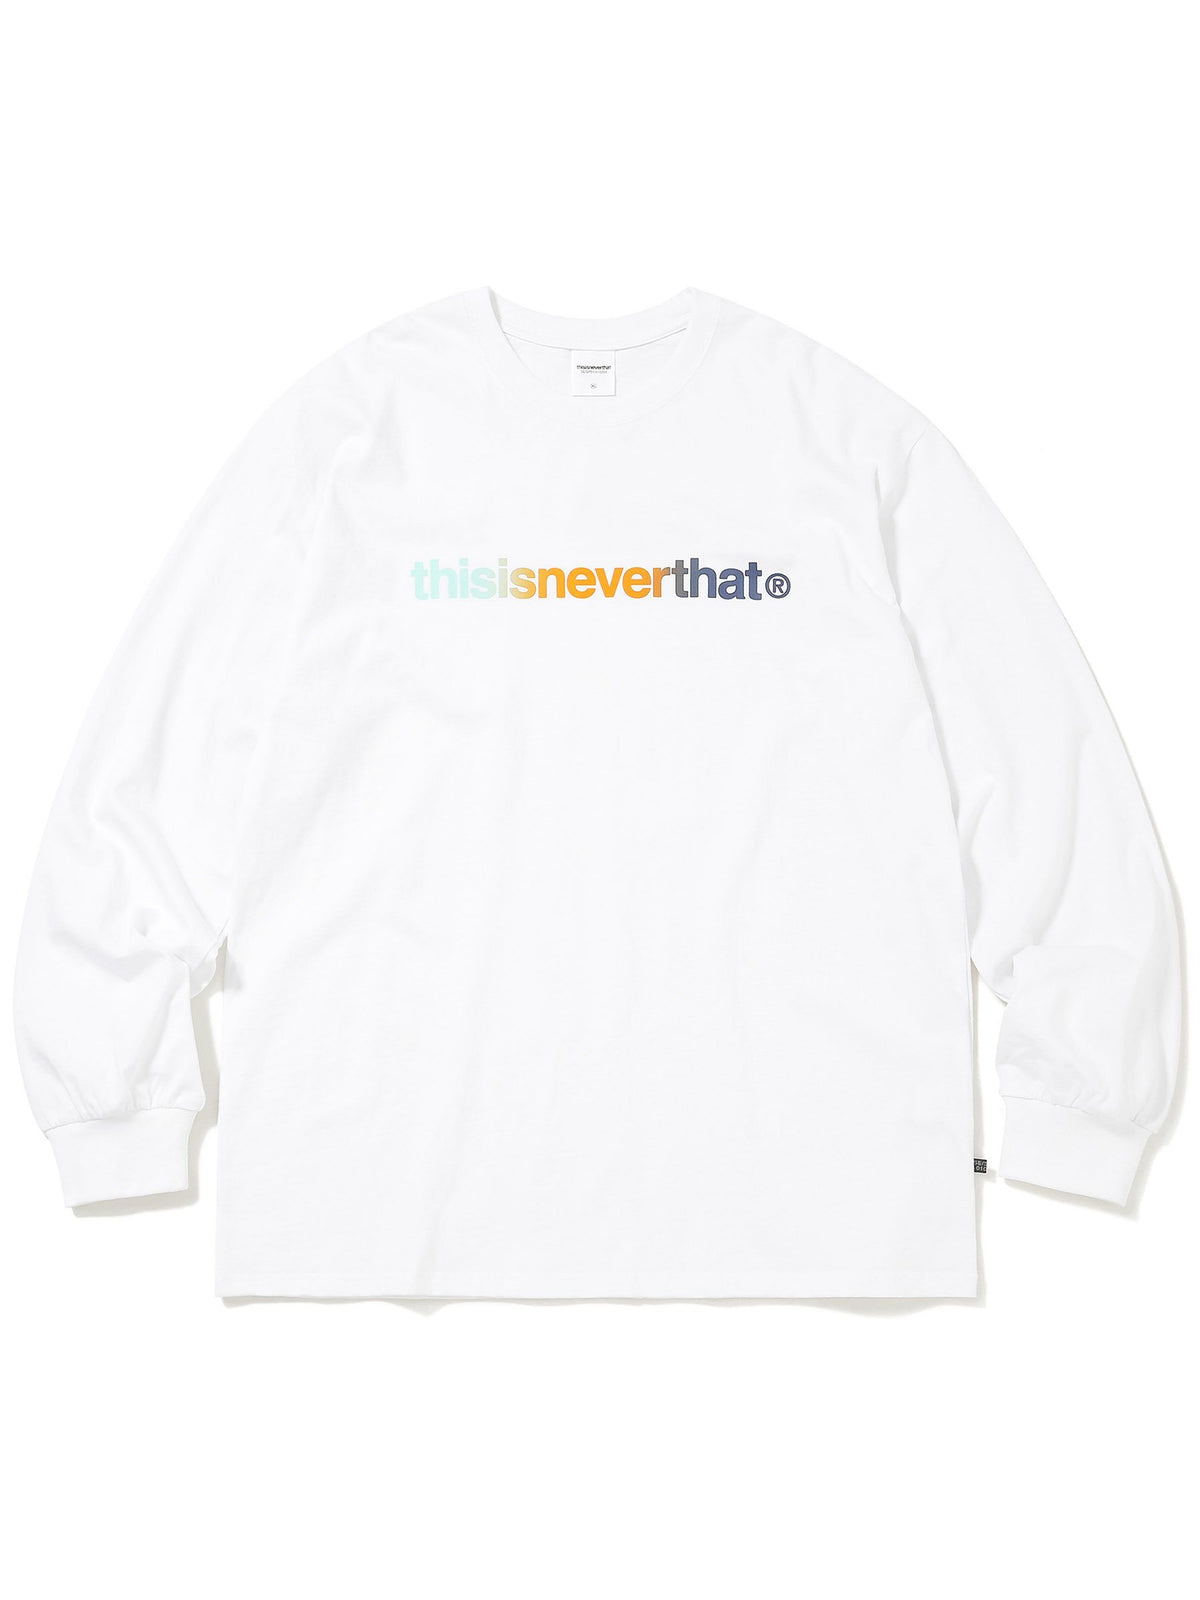 T-Logo L/SL Top - thisisneverthat